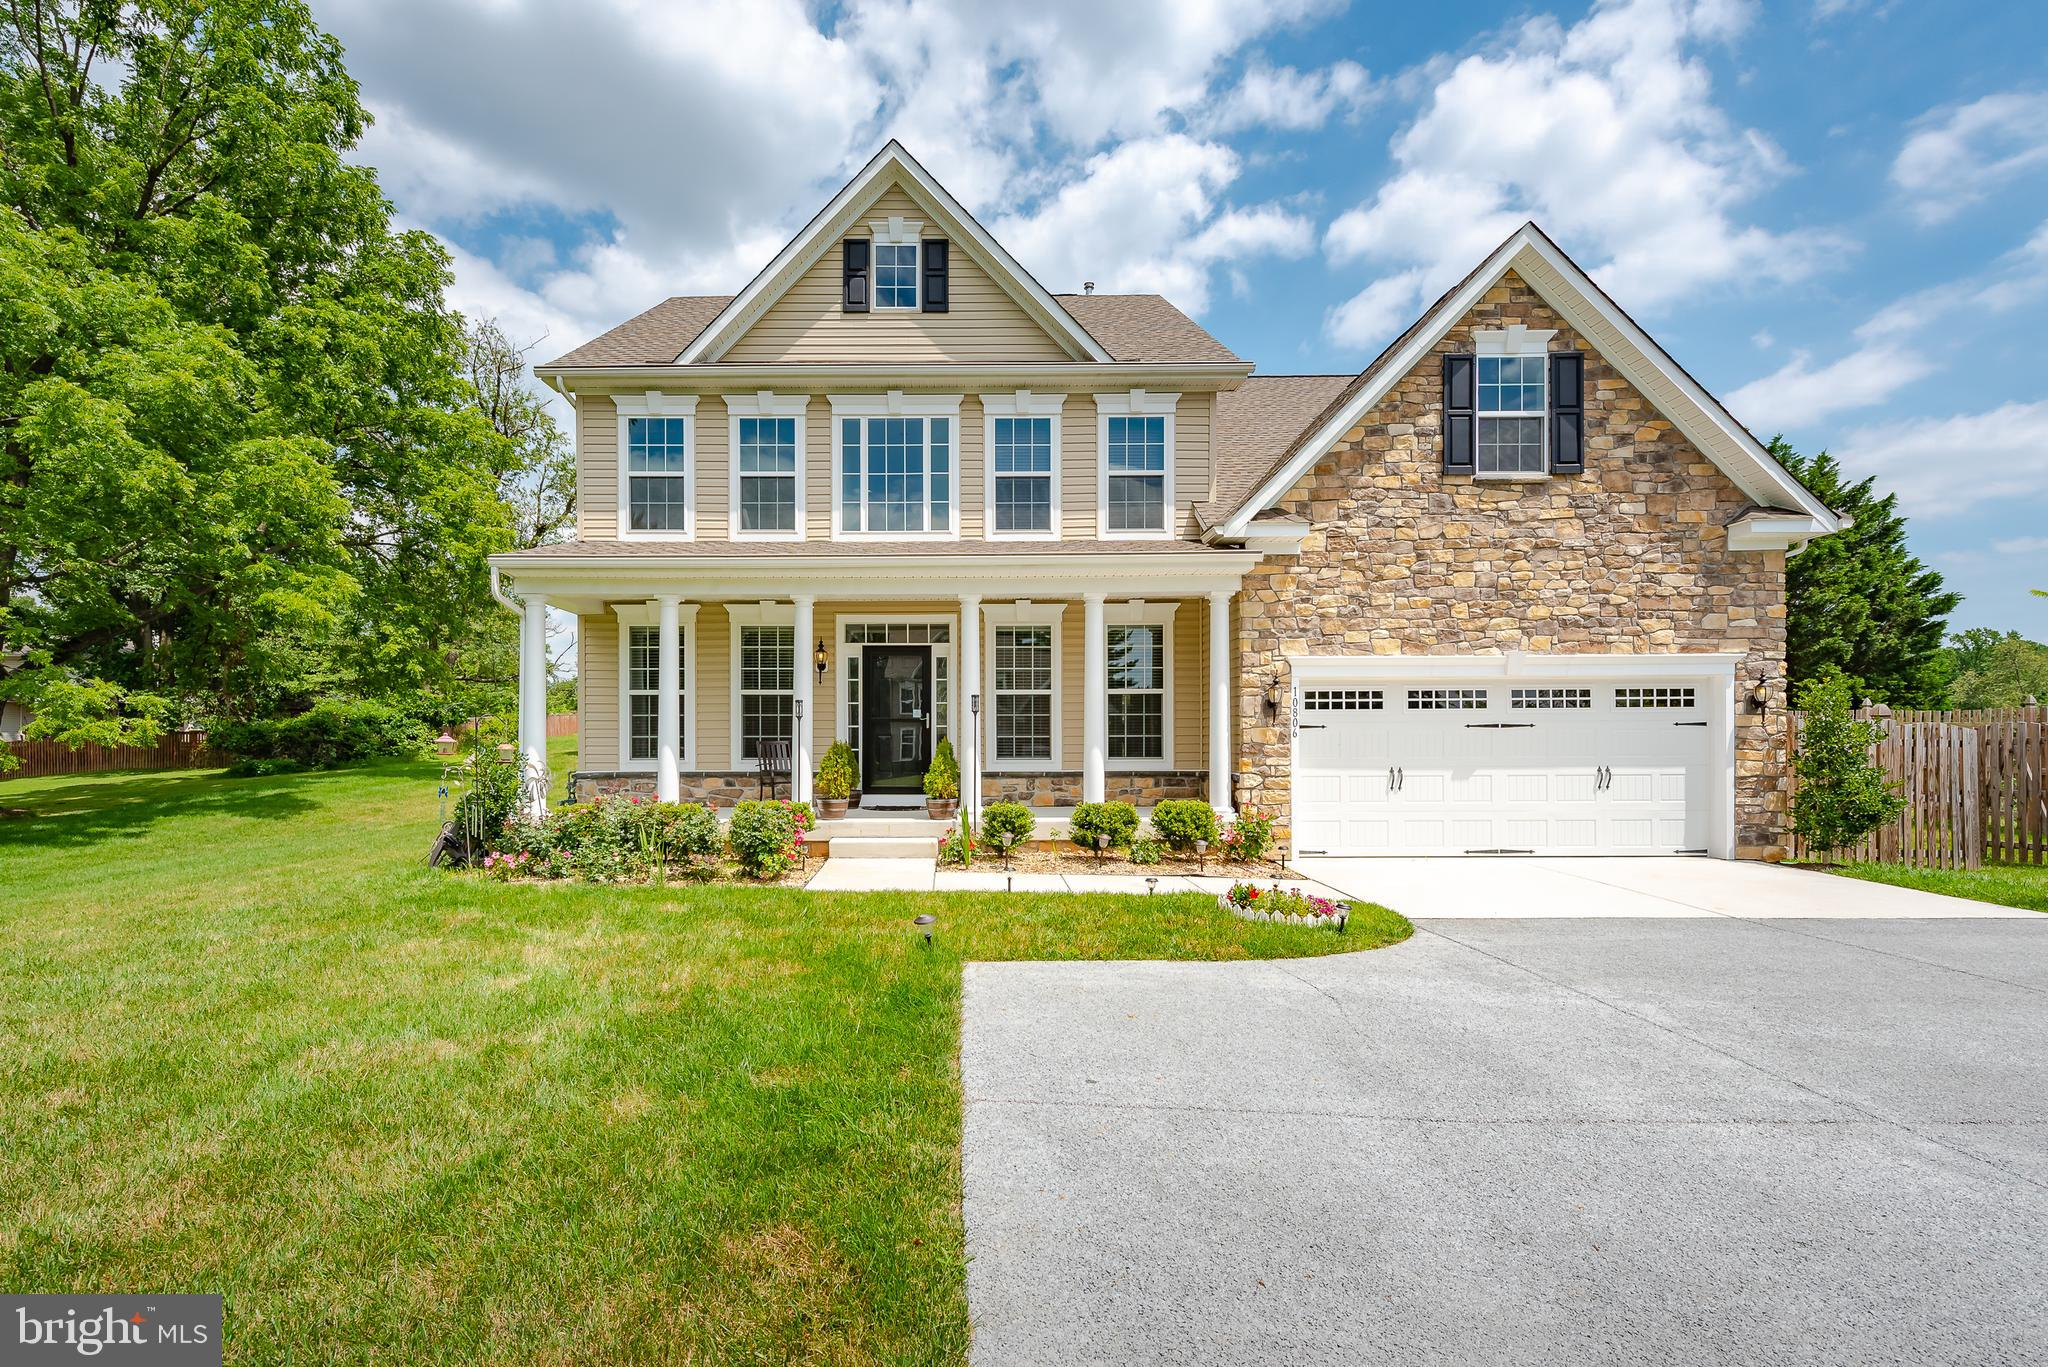 10806 HUNTING LANE, COLUMBIA, MD 21044